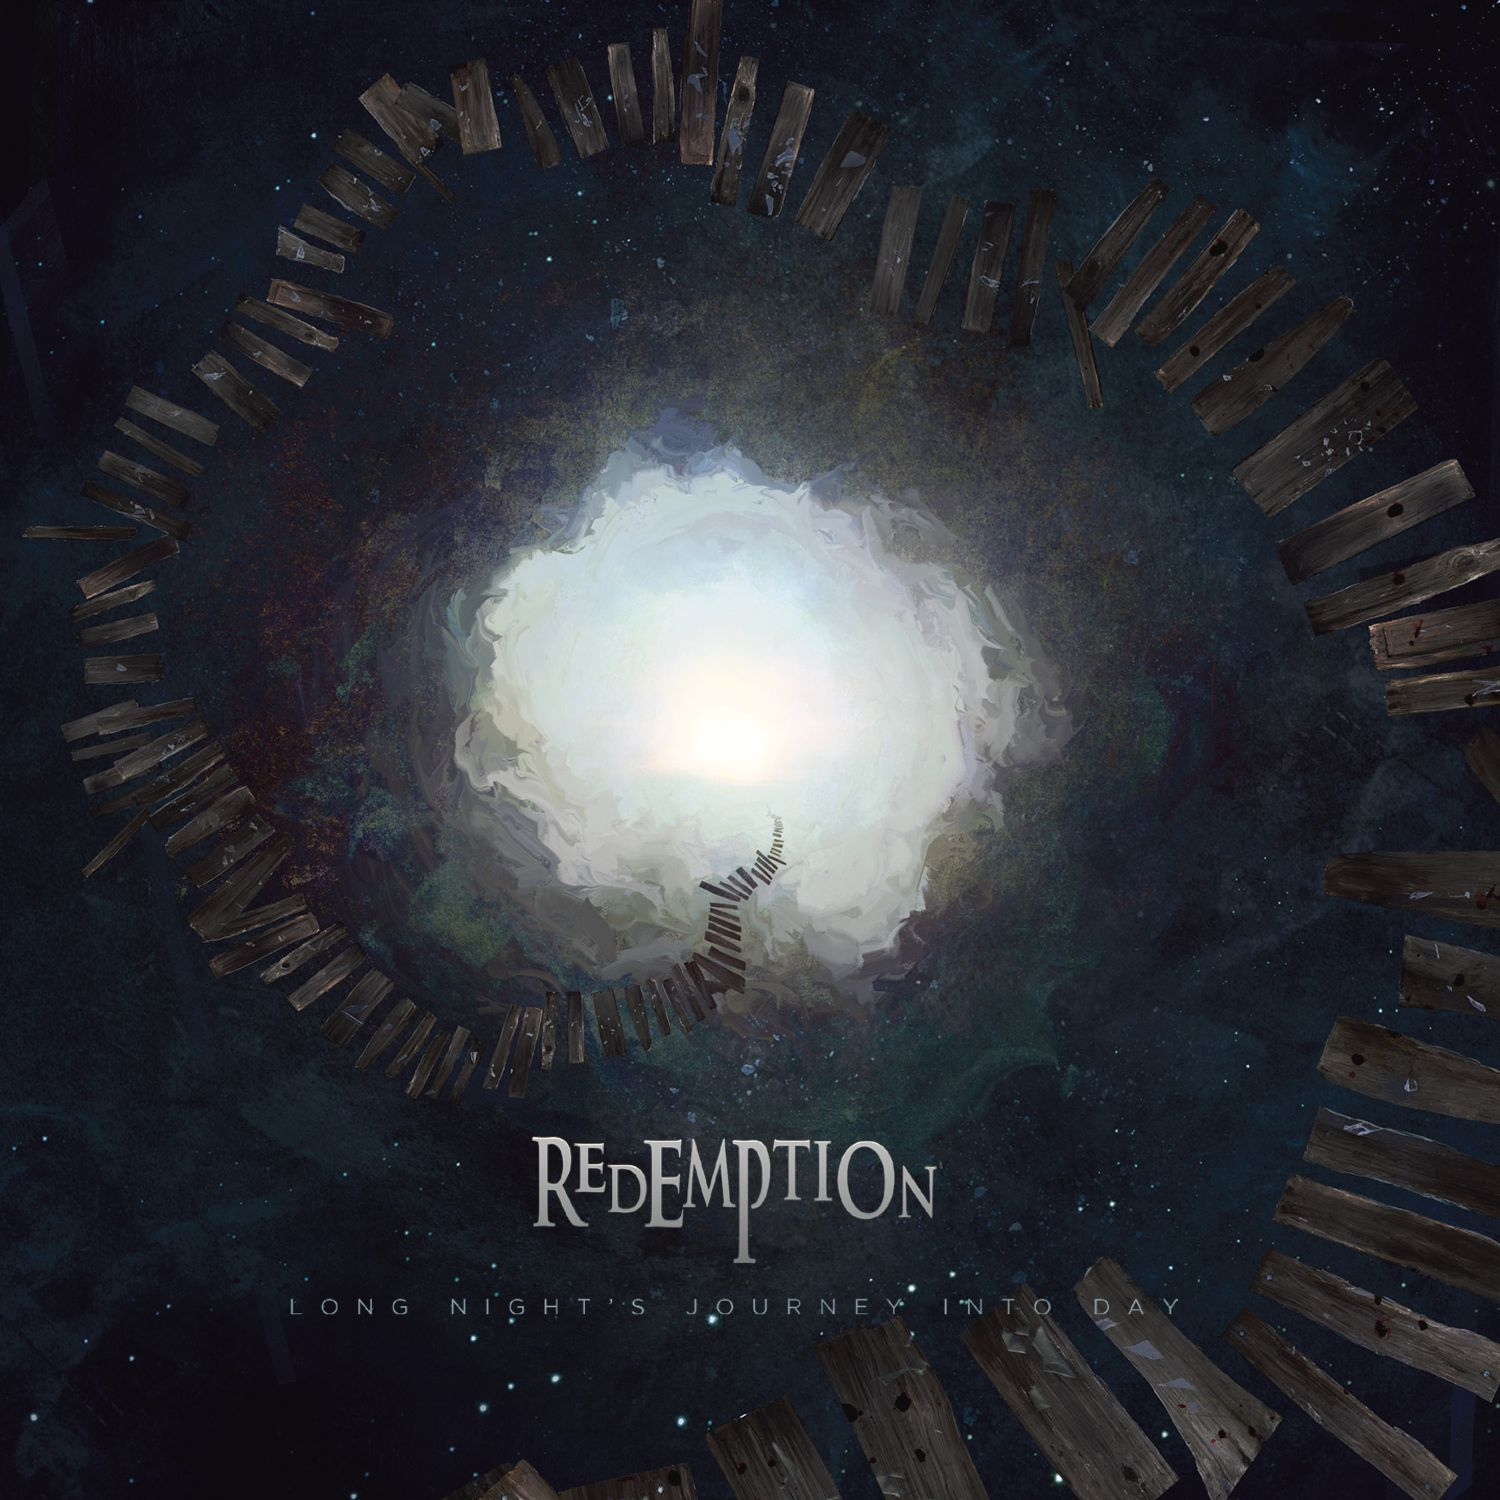 Redemption - Long Night's Journey Into Day - Artwork